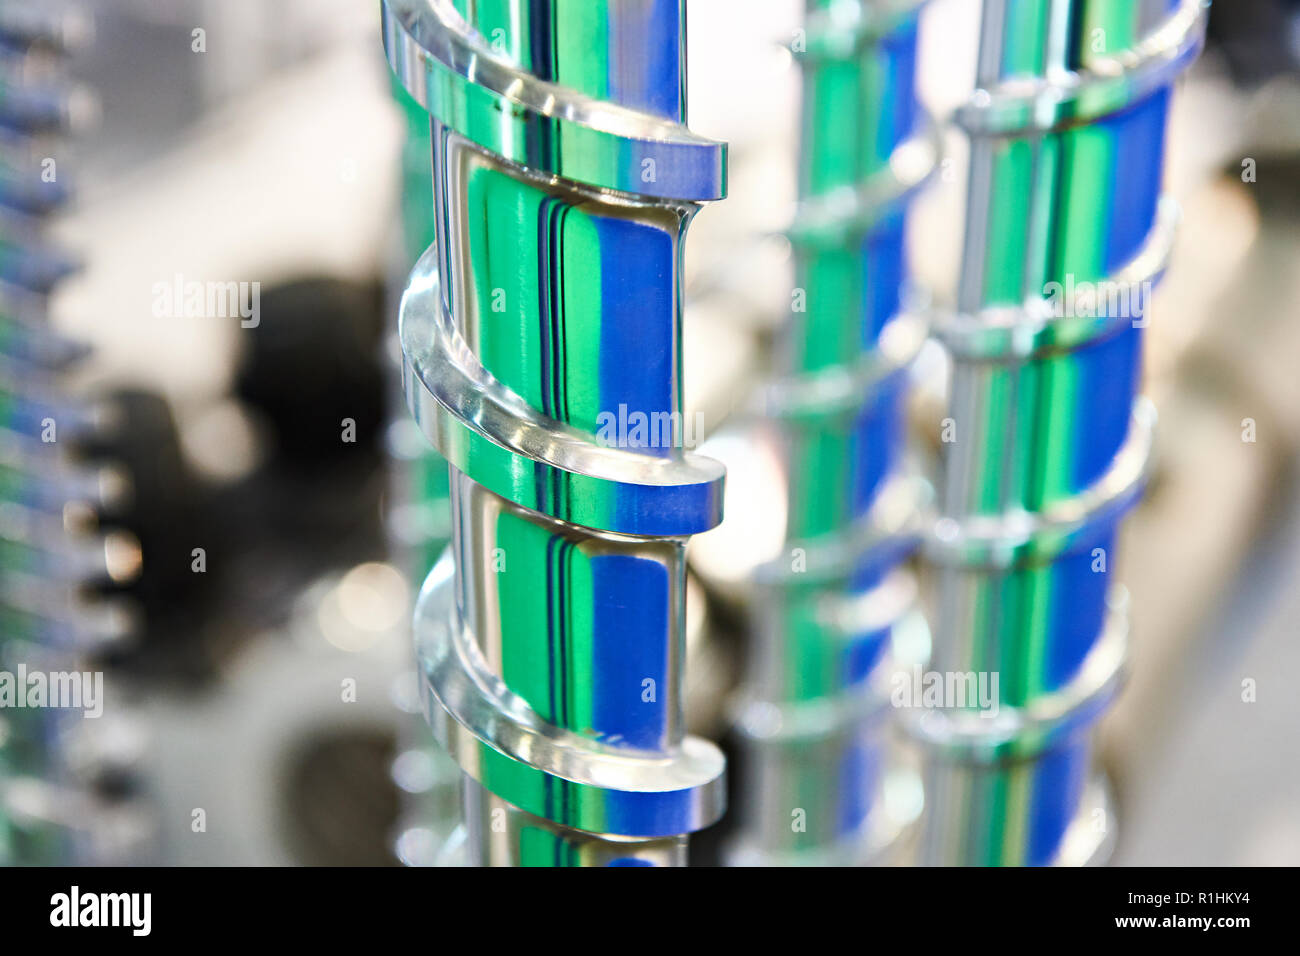 Large borer drills in shop Stock Photo